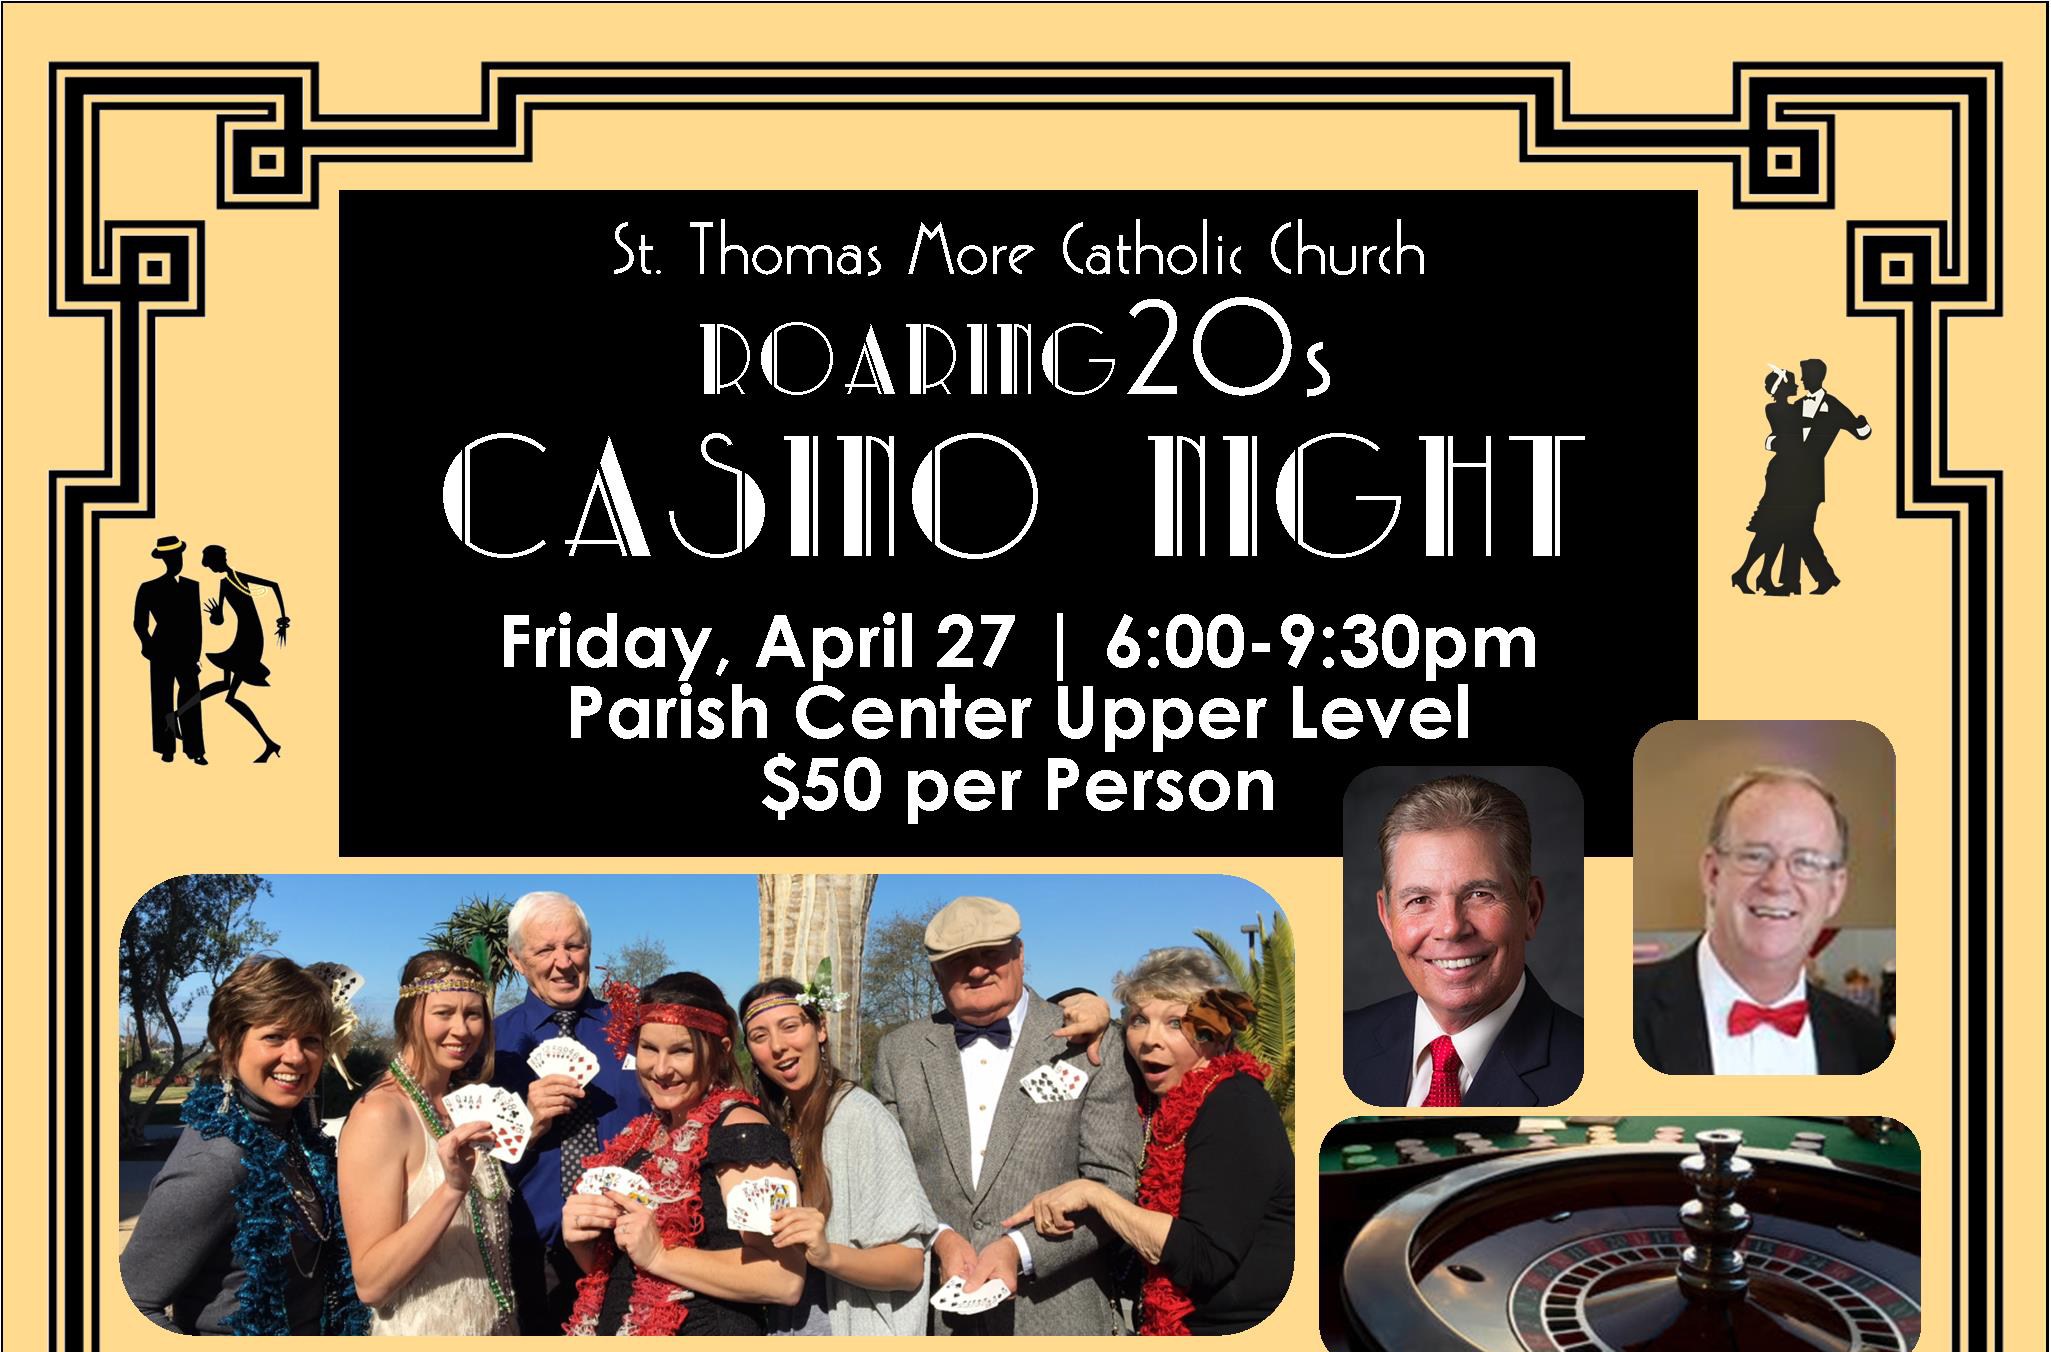 Roaring 20s Casino Night